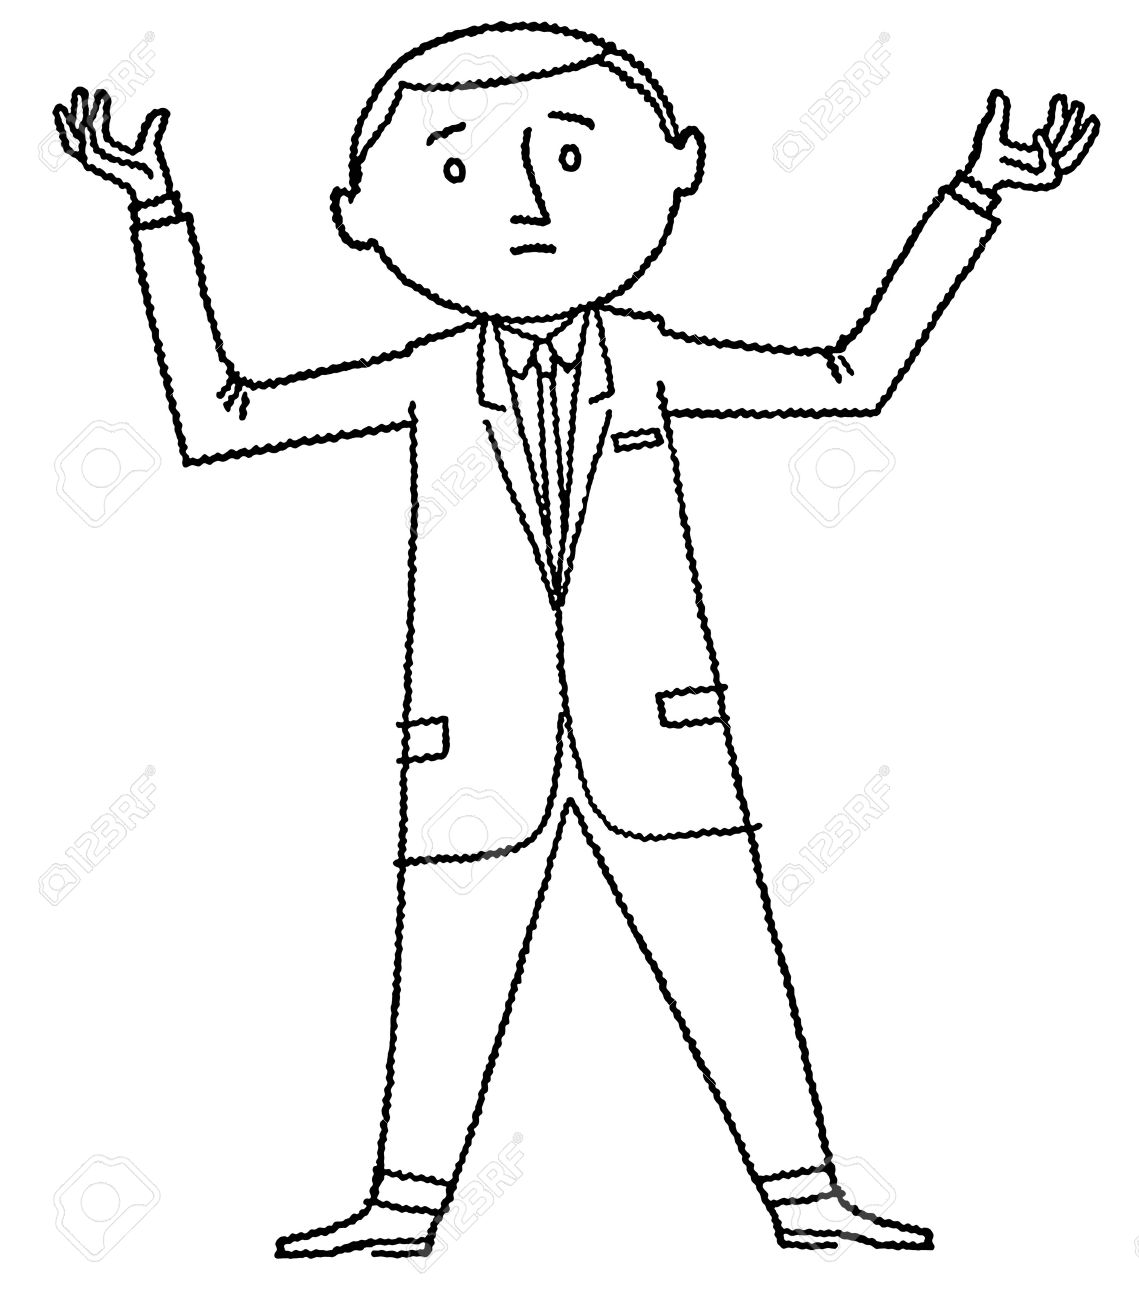 A black and white version of a cartoon style drawing of a man on the edge